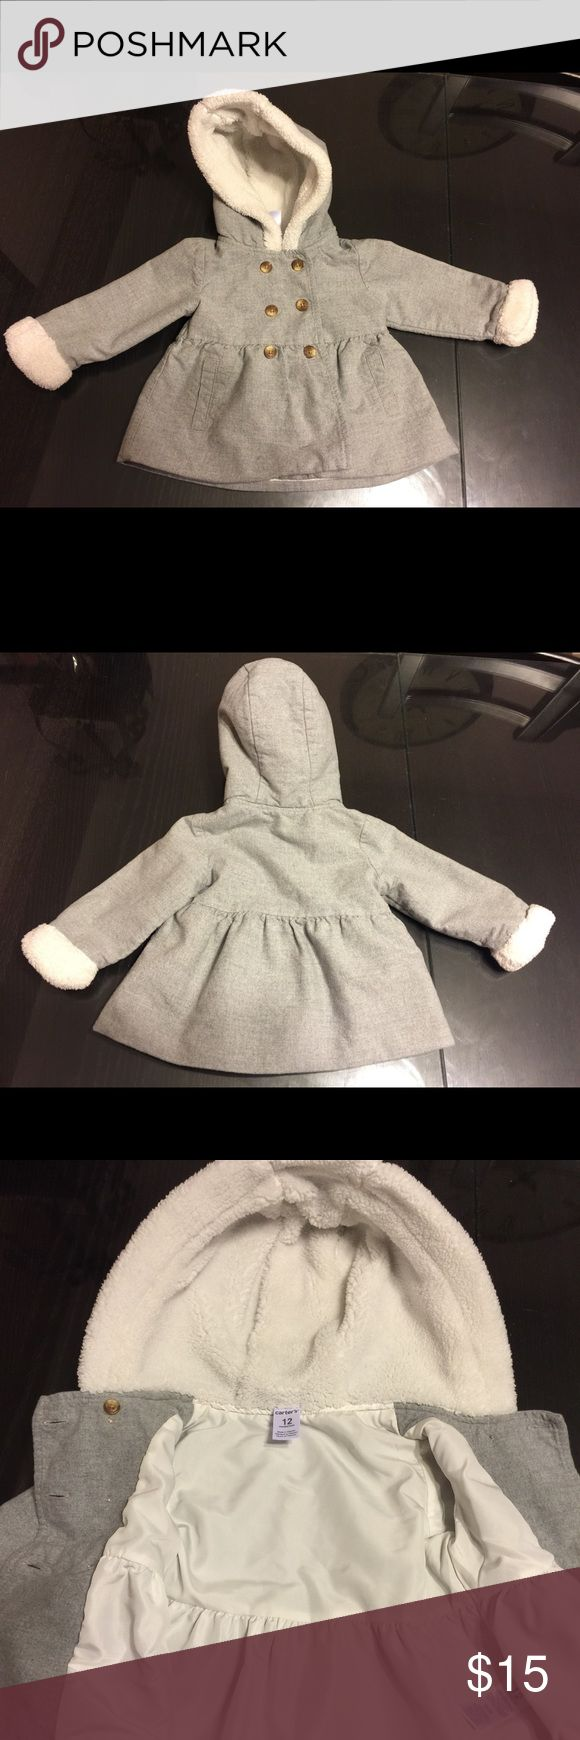 Baby girl peacoat Grey and white coat. Very cute when paired with jeans and boots. Barely used. Carter's Jackets & Coats Pea Coats